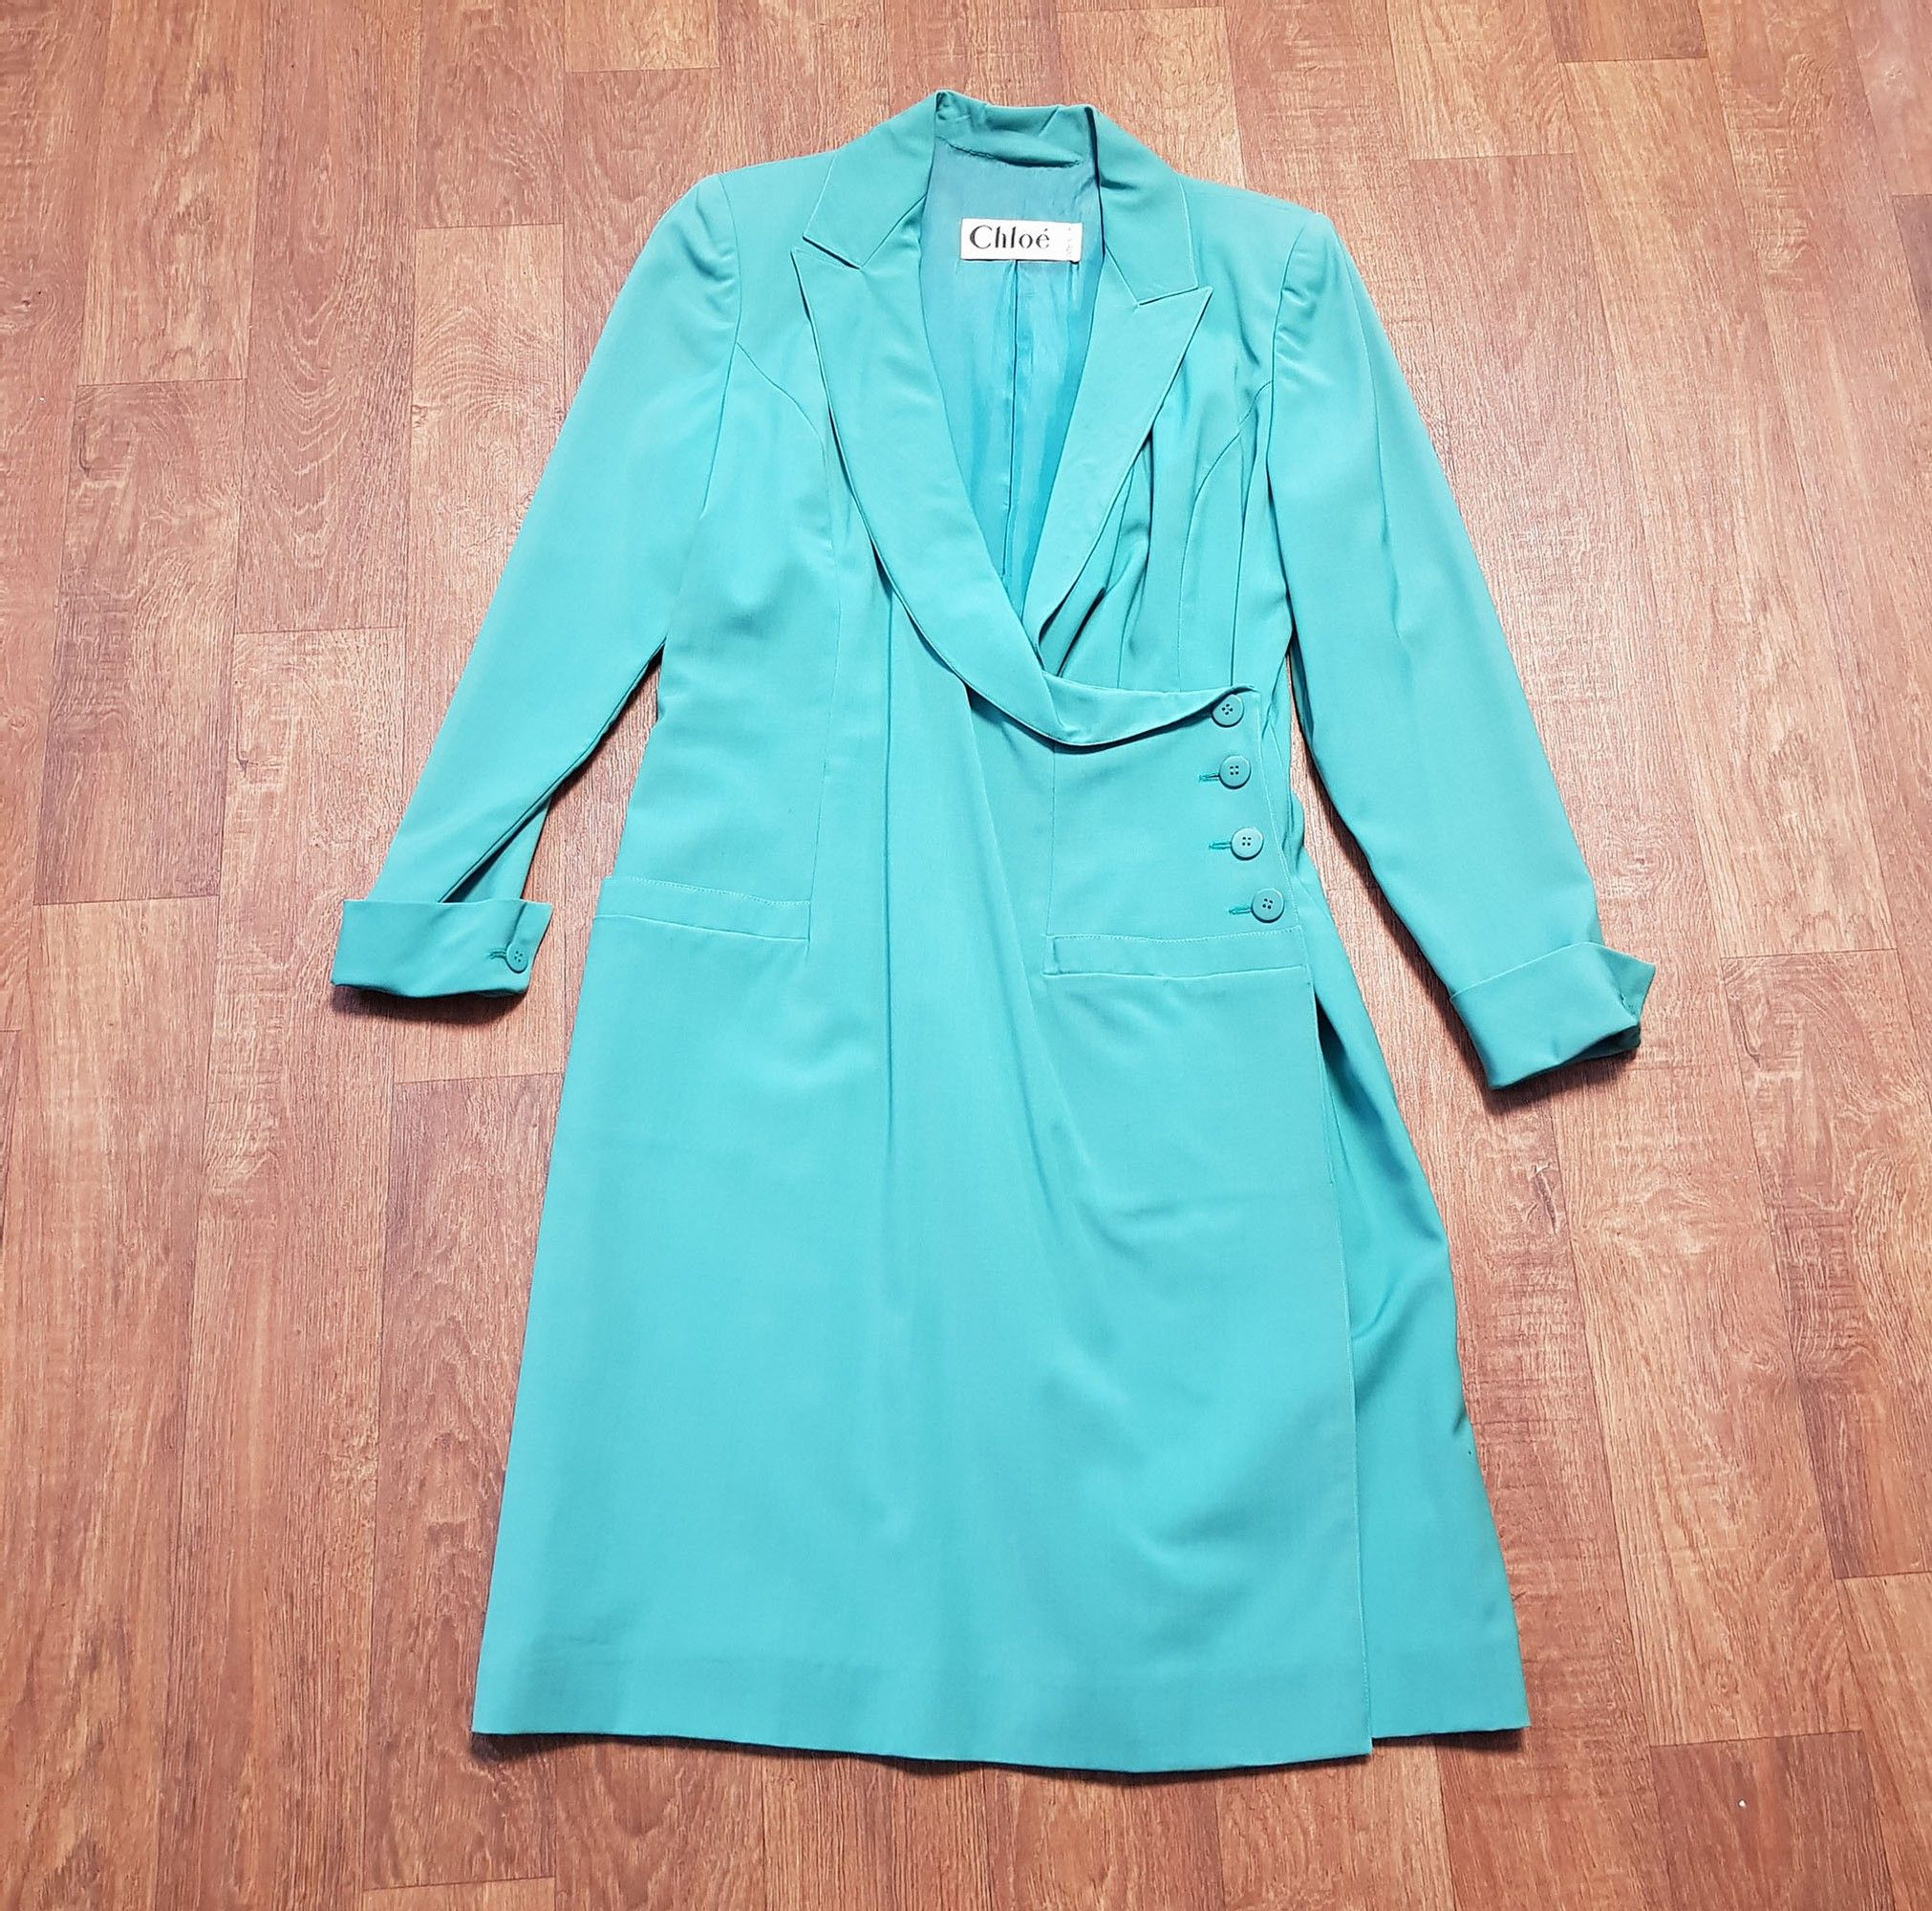 1980s Vintage Chlo Green Blazer Dress UK Size 12